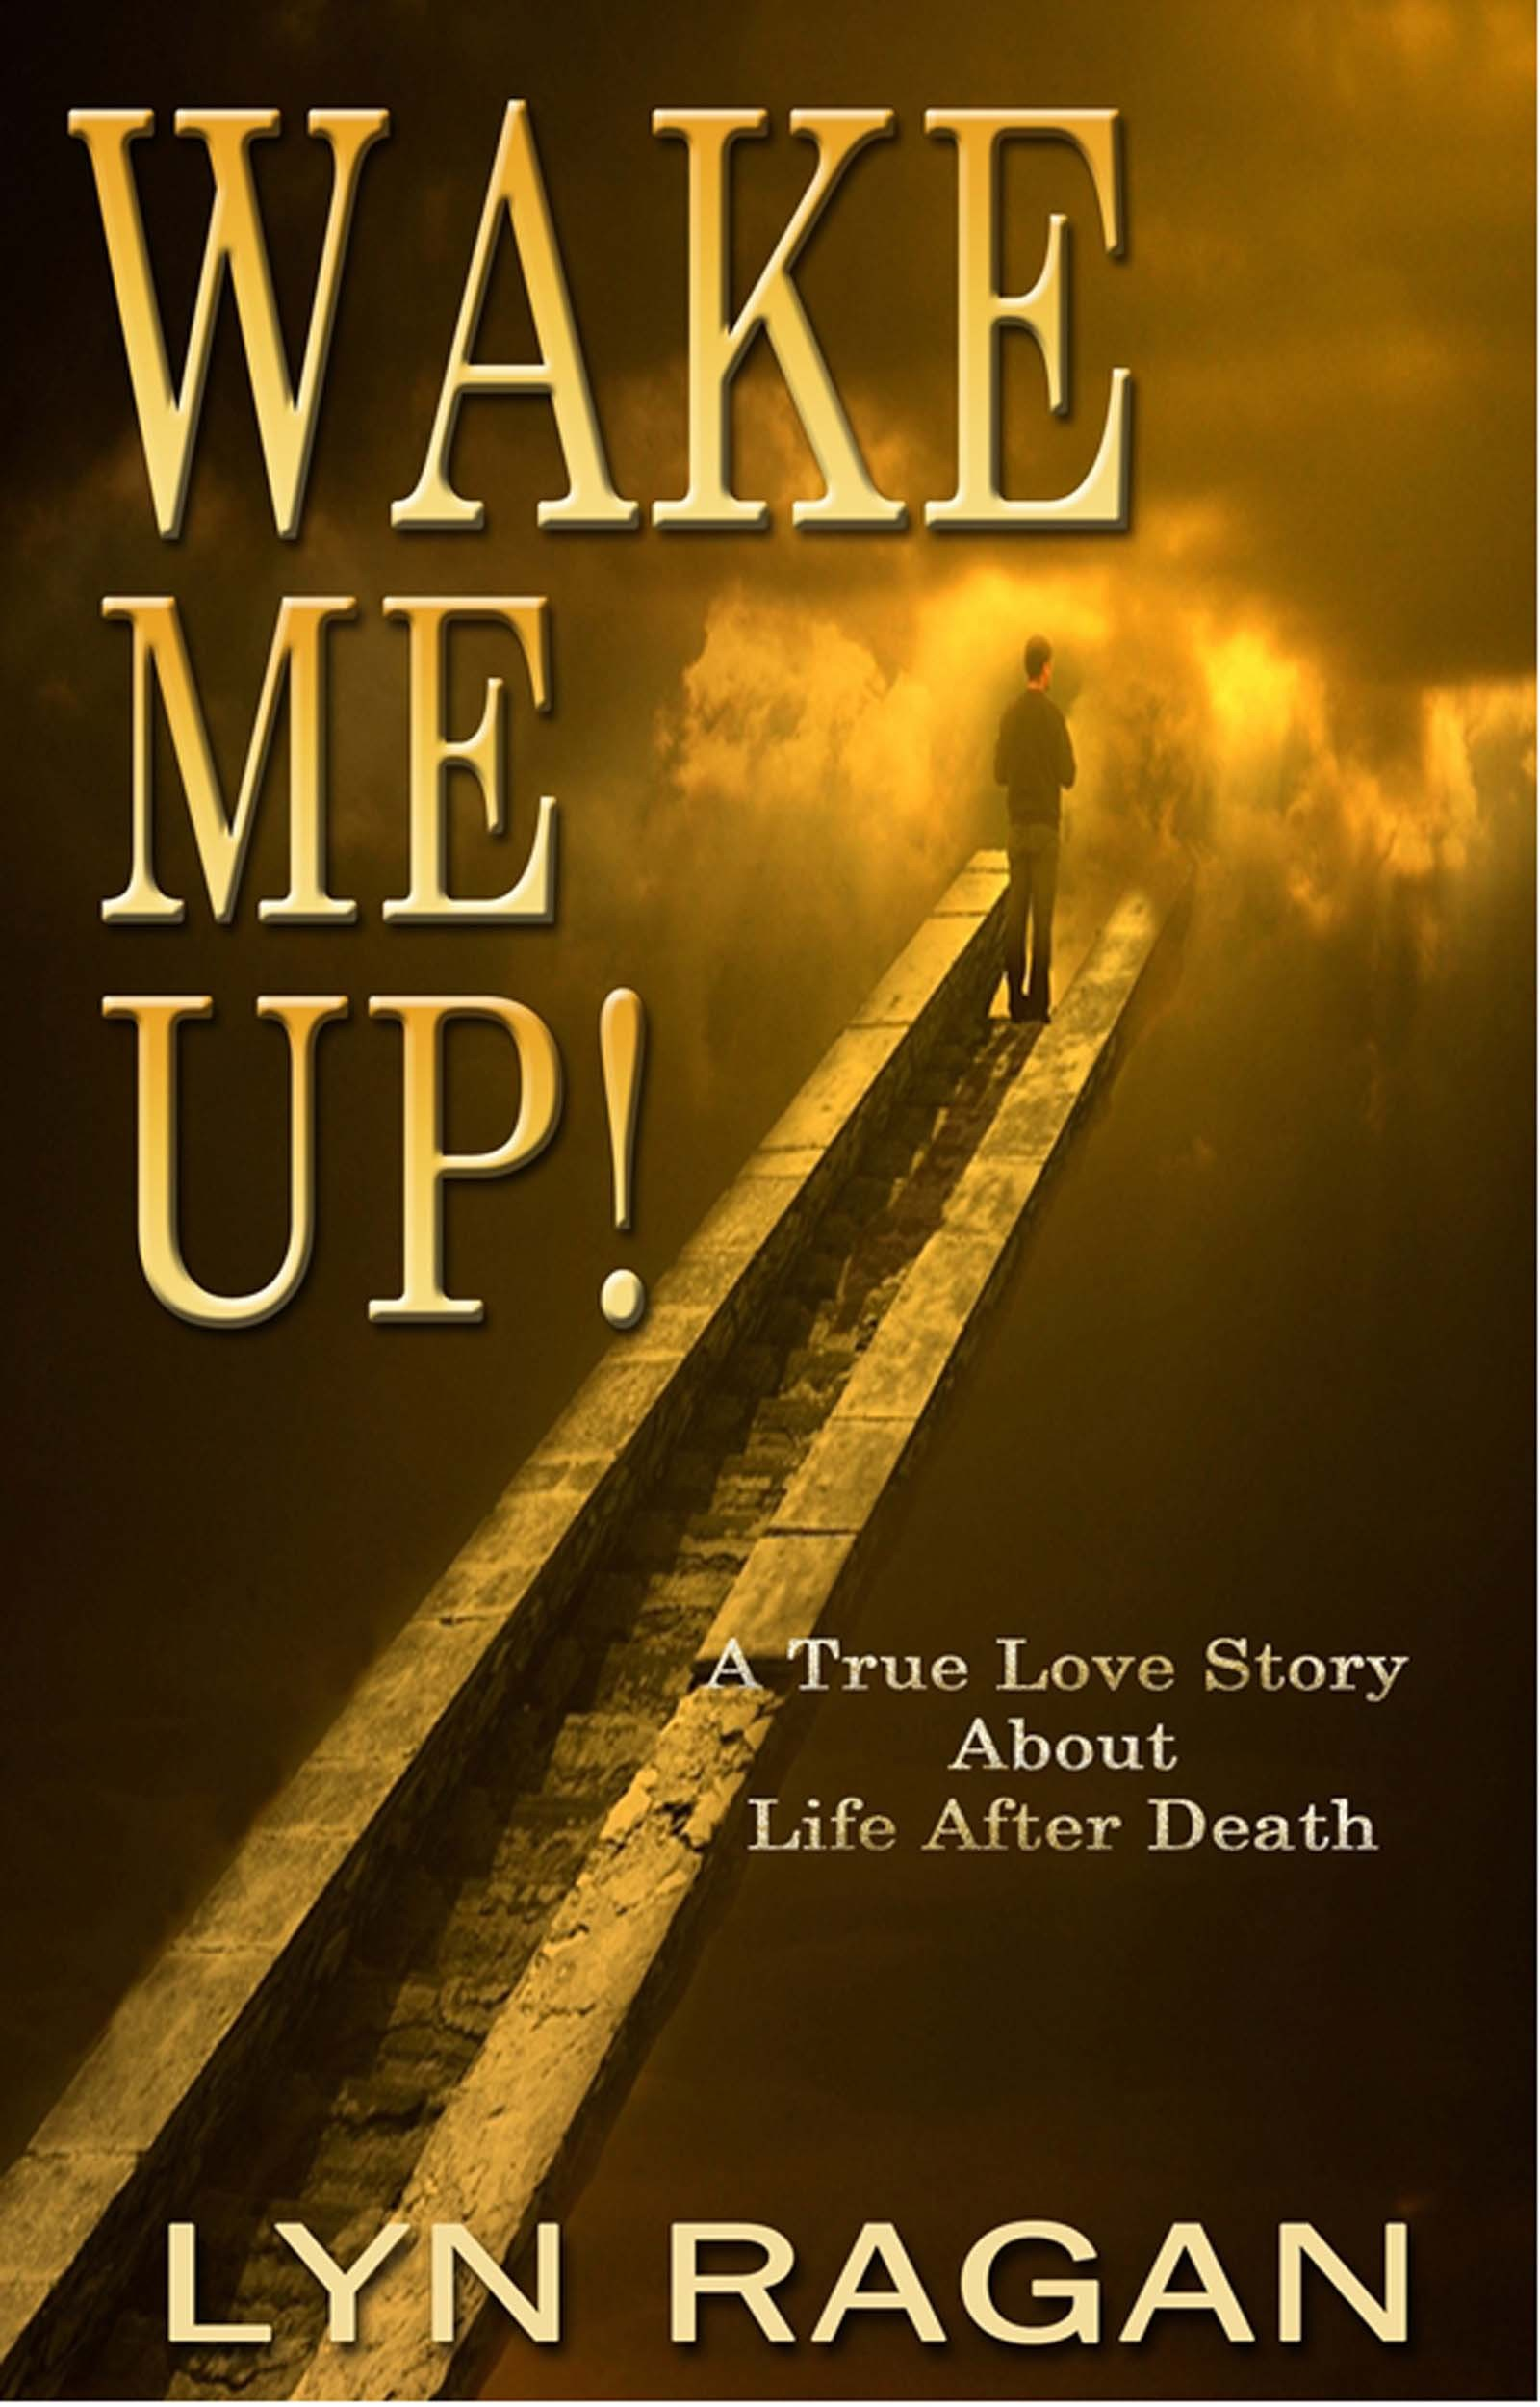 Wake Me Up! A True Love Story About Life After Death